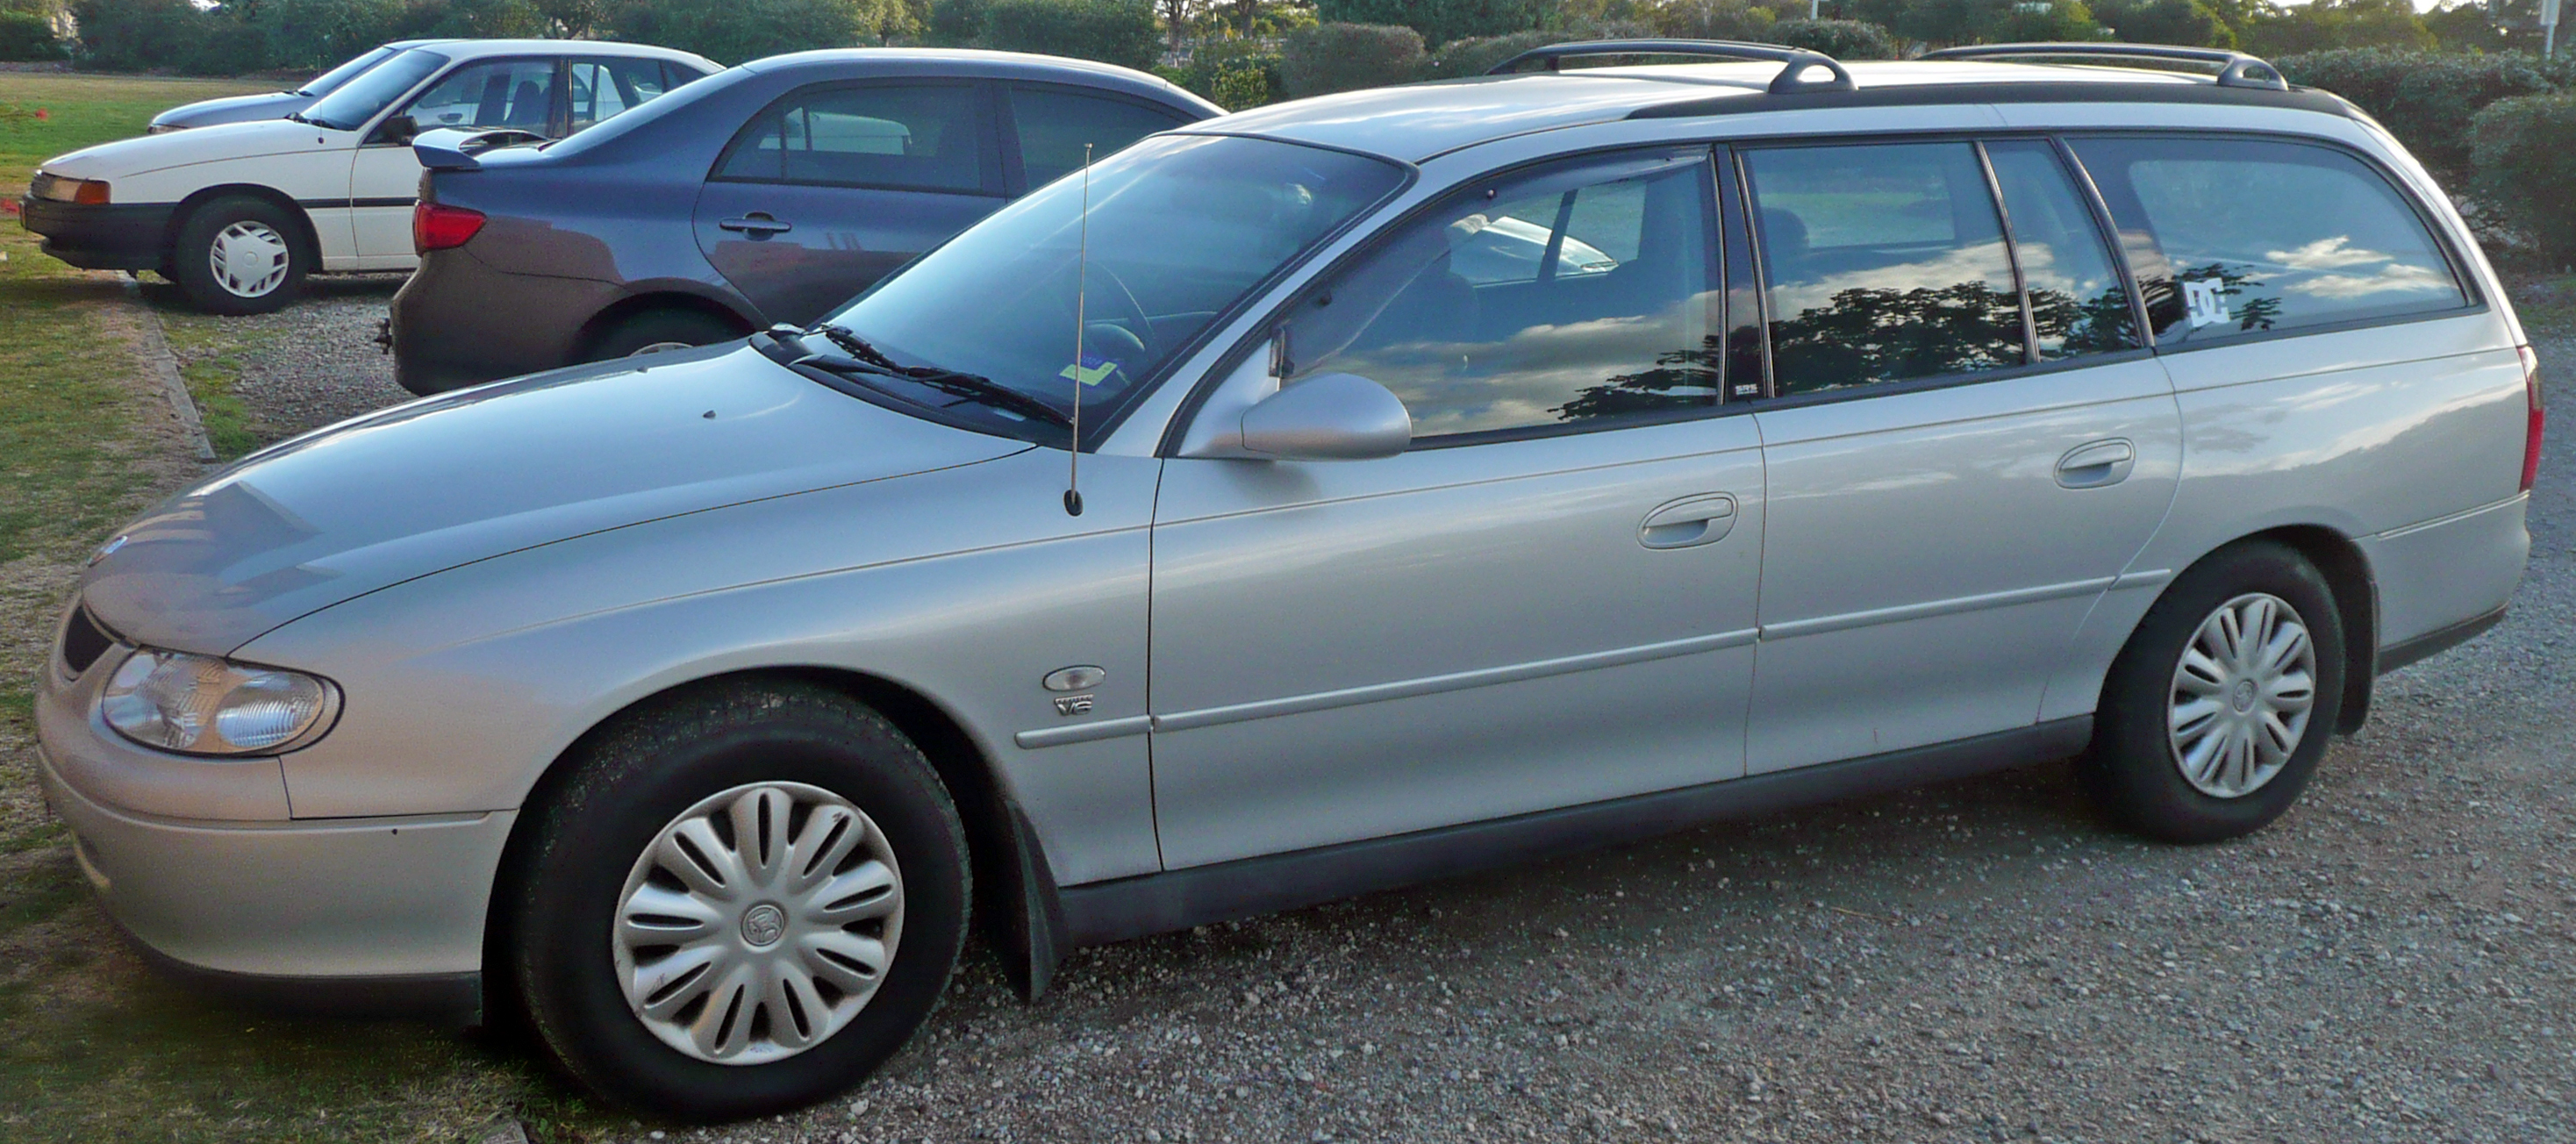 holden commodore wagon (vt) 1998